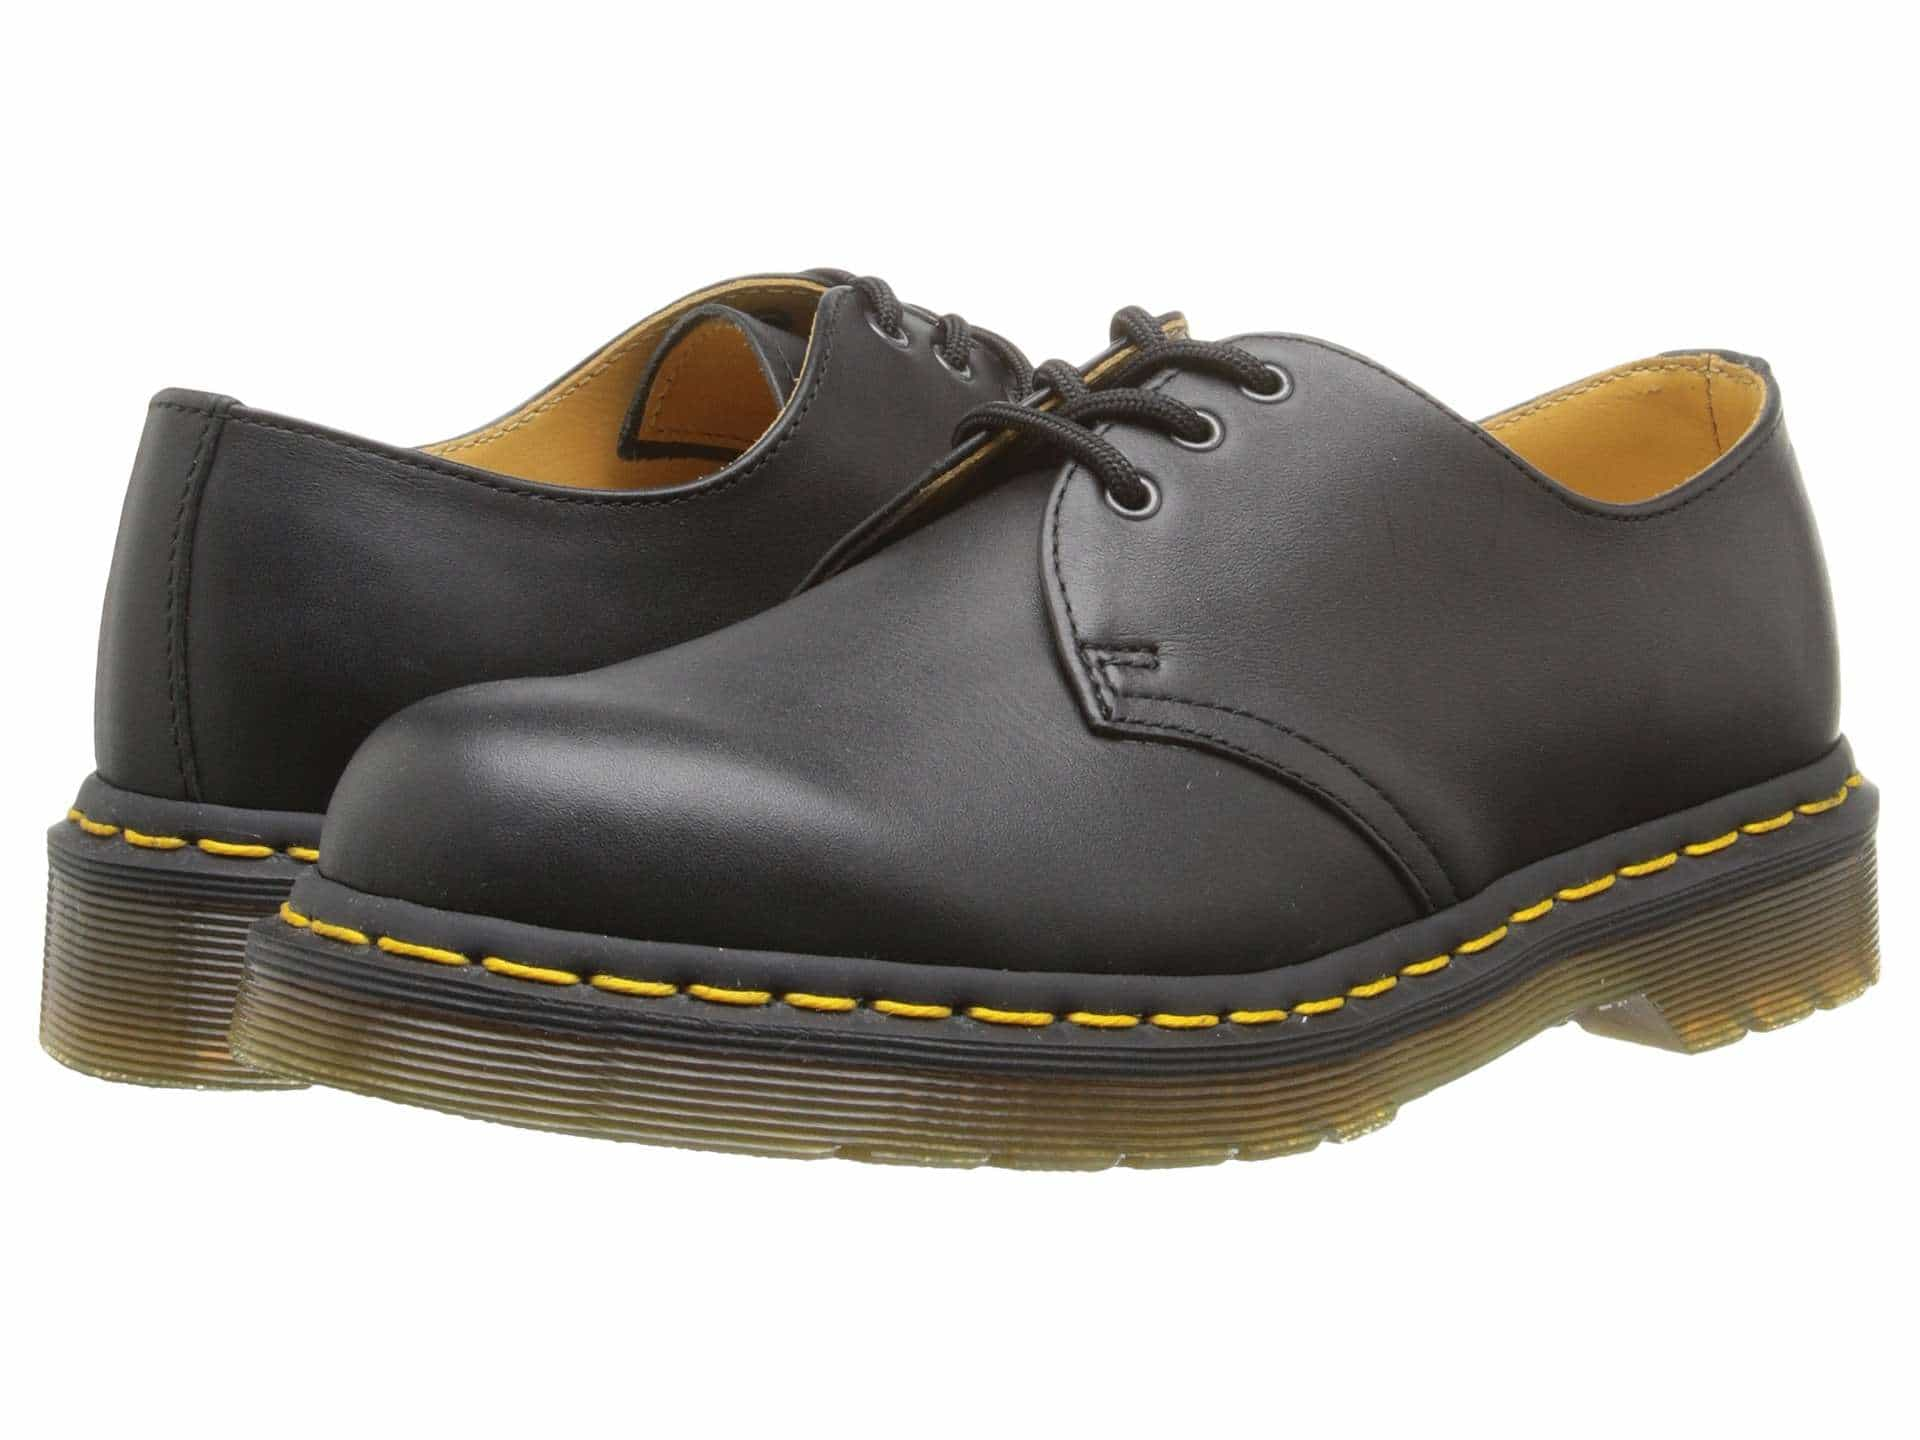 comfortable work shoes for standing all day